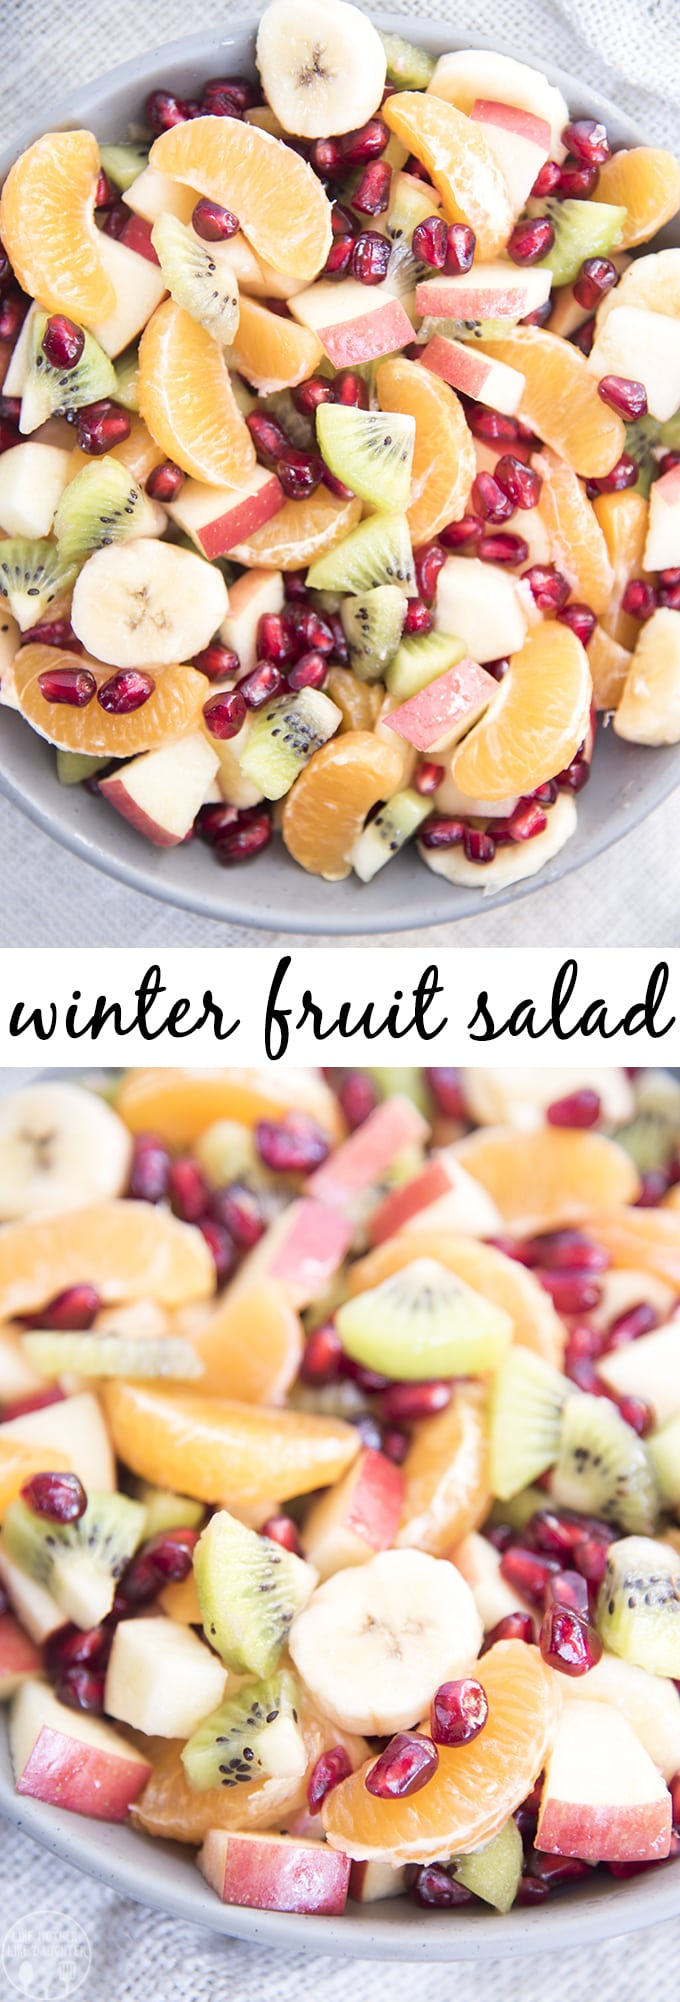 This Winter Fruit Salad Recipe loaded full of winter fruits, and is perfect for a holiday party or dinner side dish.